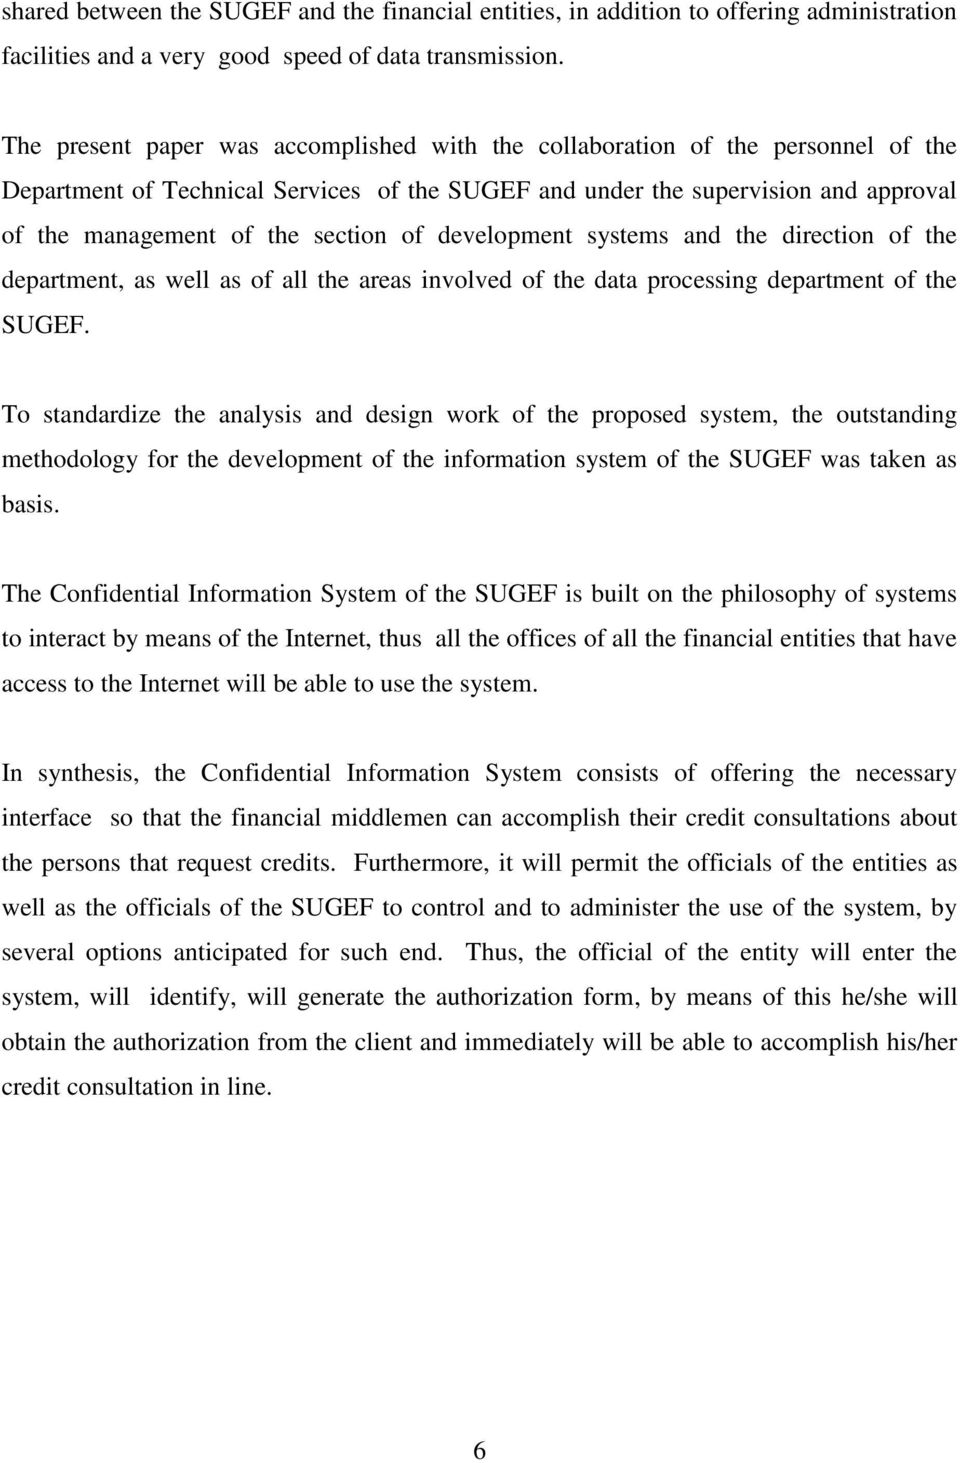 of development systems and the direction of the department, as well as of all the areas involved of the data processing department of the SUGEF.